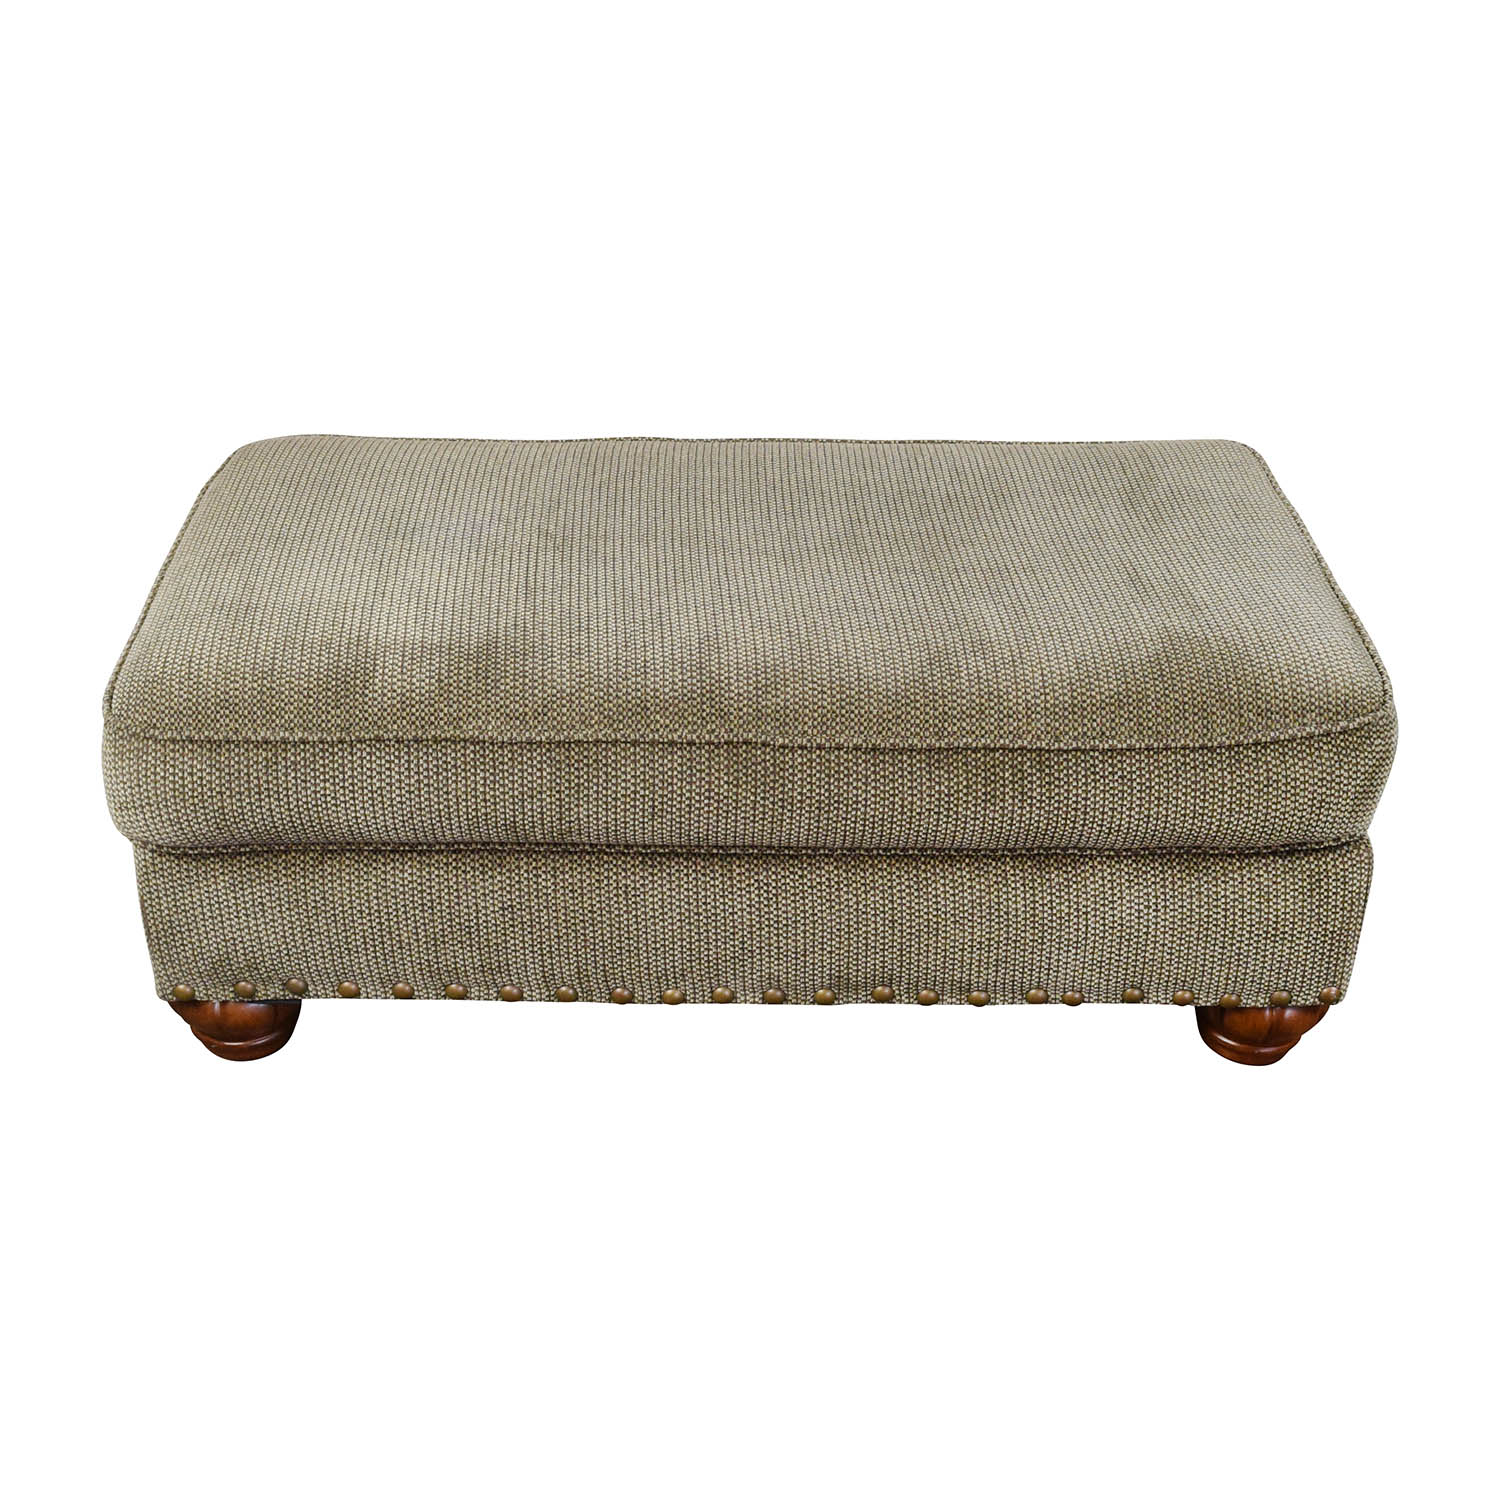 Barklay Barklay Brown Ottoman Chairs